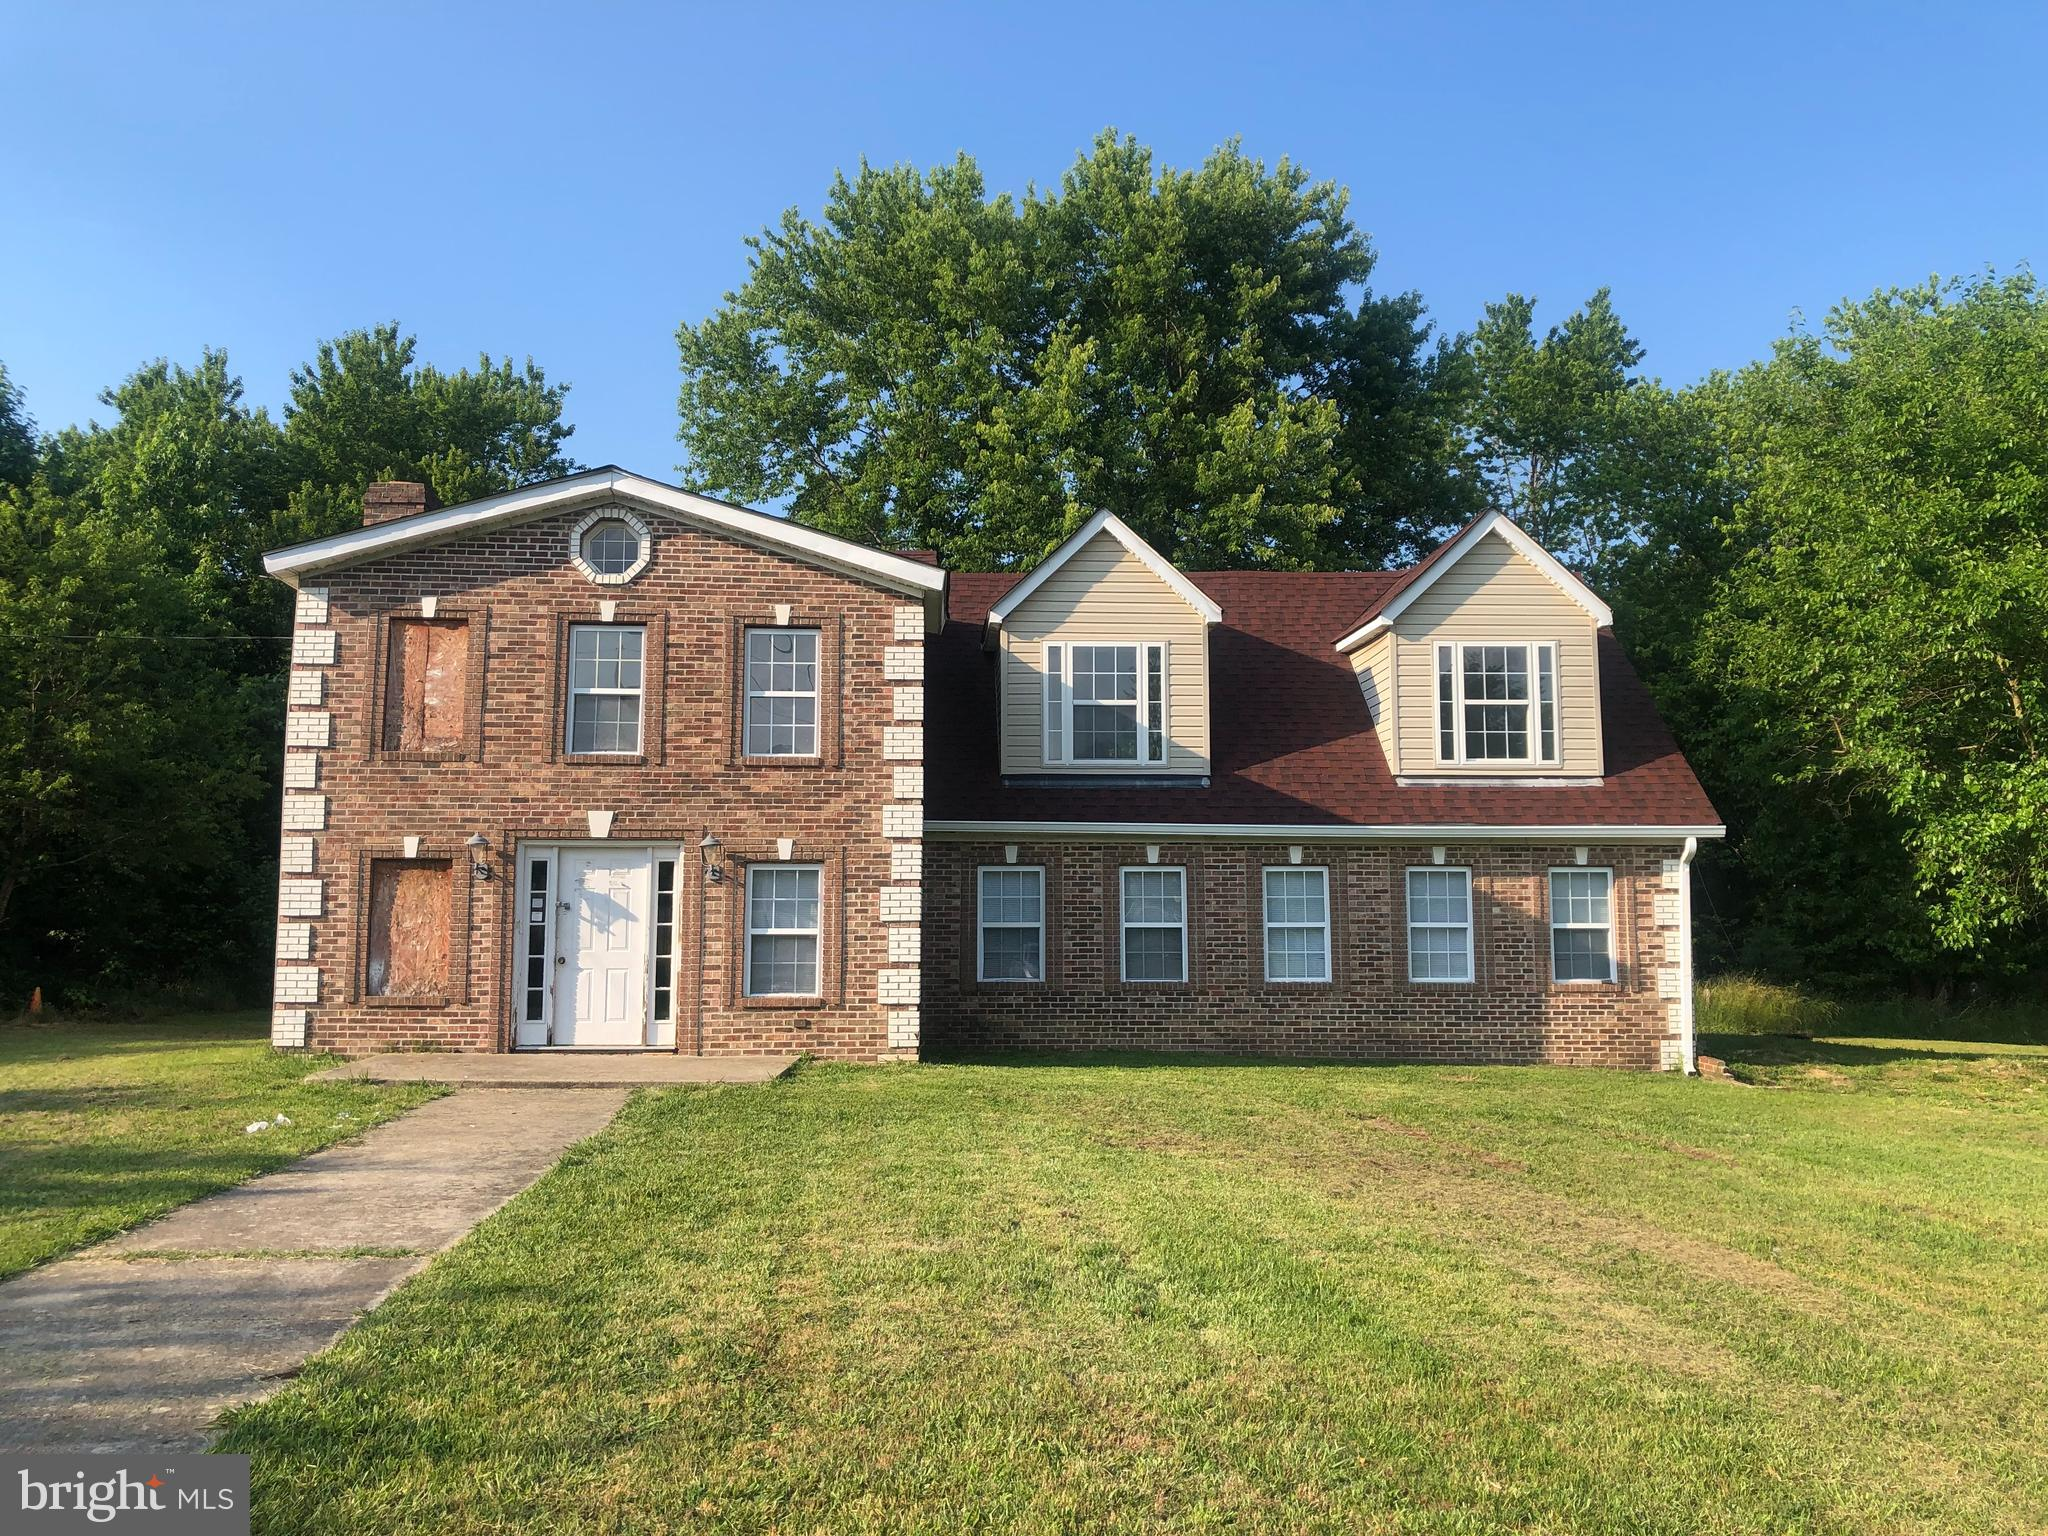 Great opportunity for the savvy investor or homebuyer looking to transform this large house into a beautiful home.